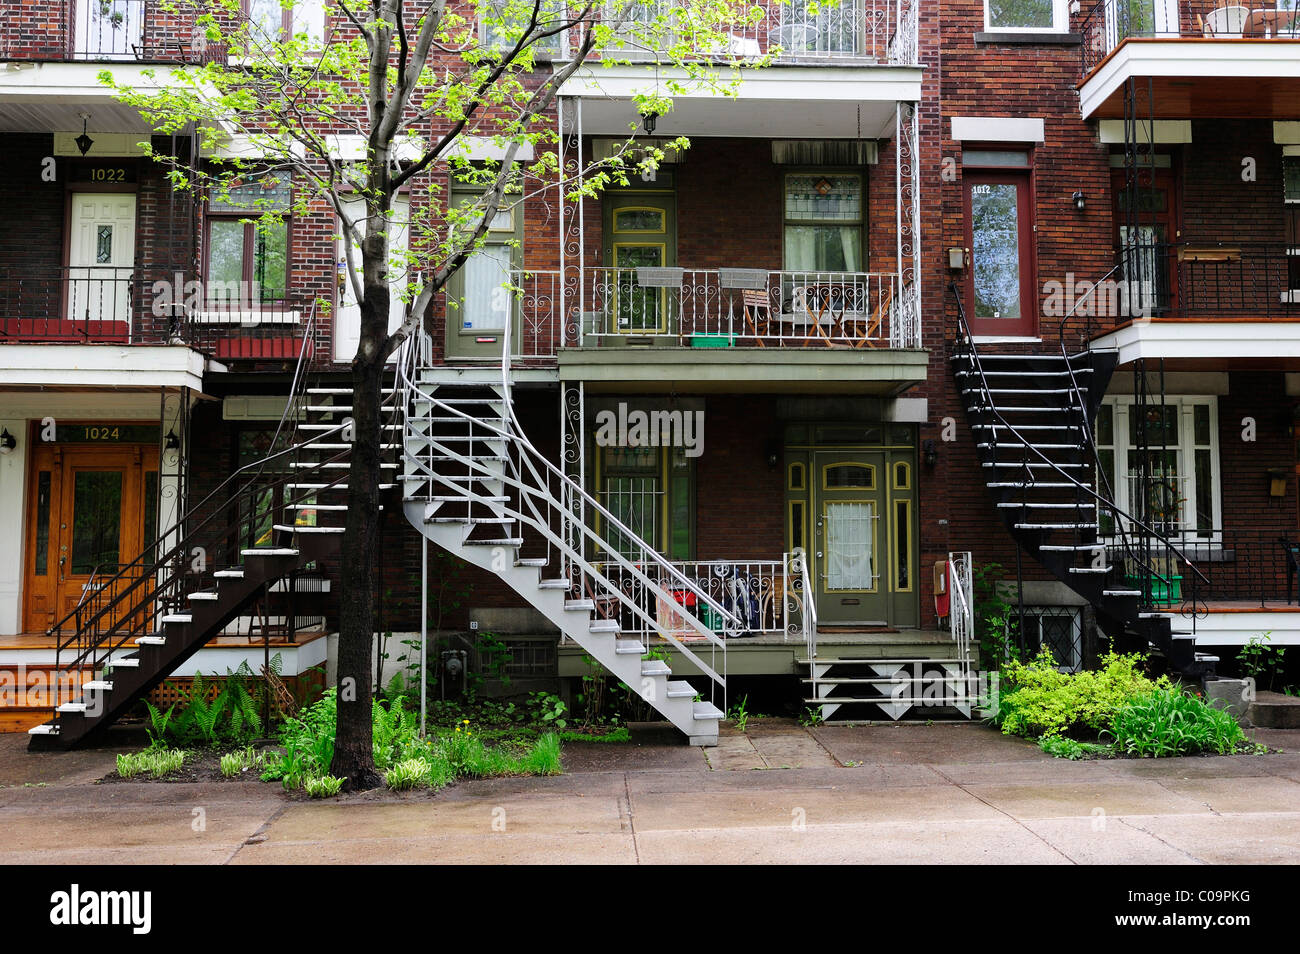 Typical houses with staircases to the first floor in Montreal, Quebec, Canada - Stock Image